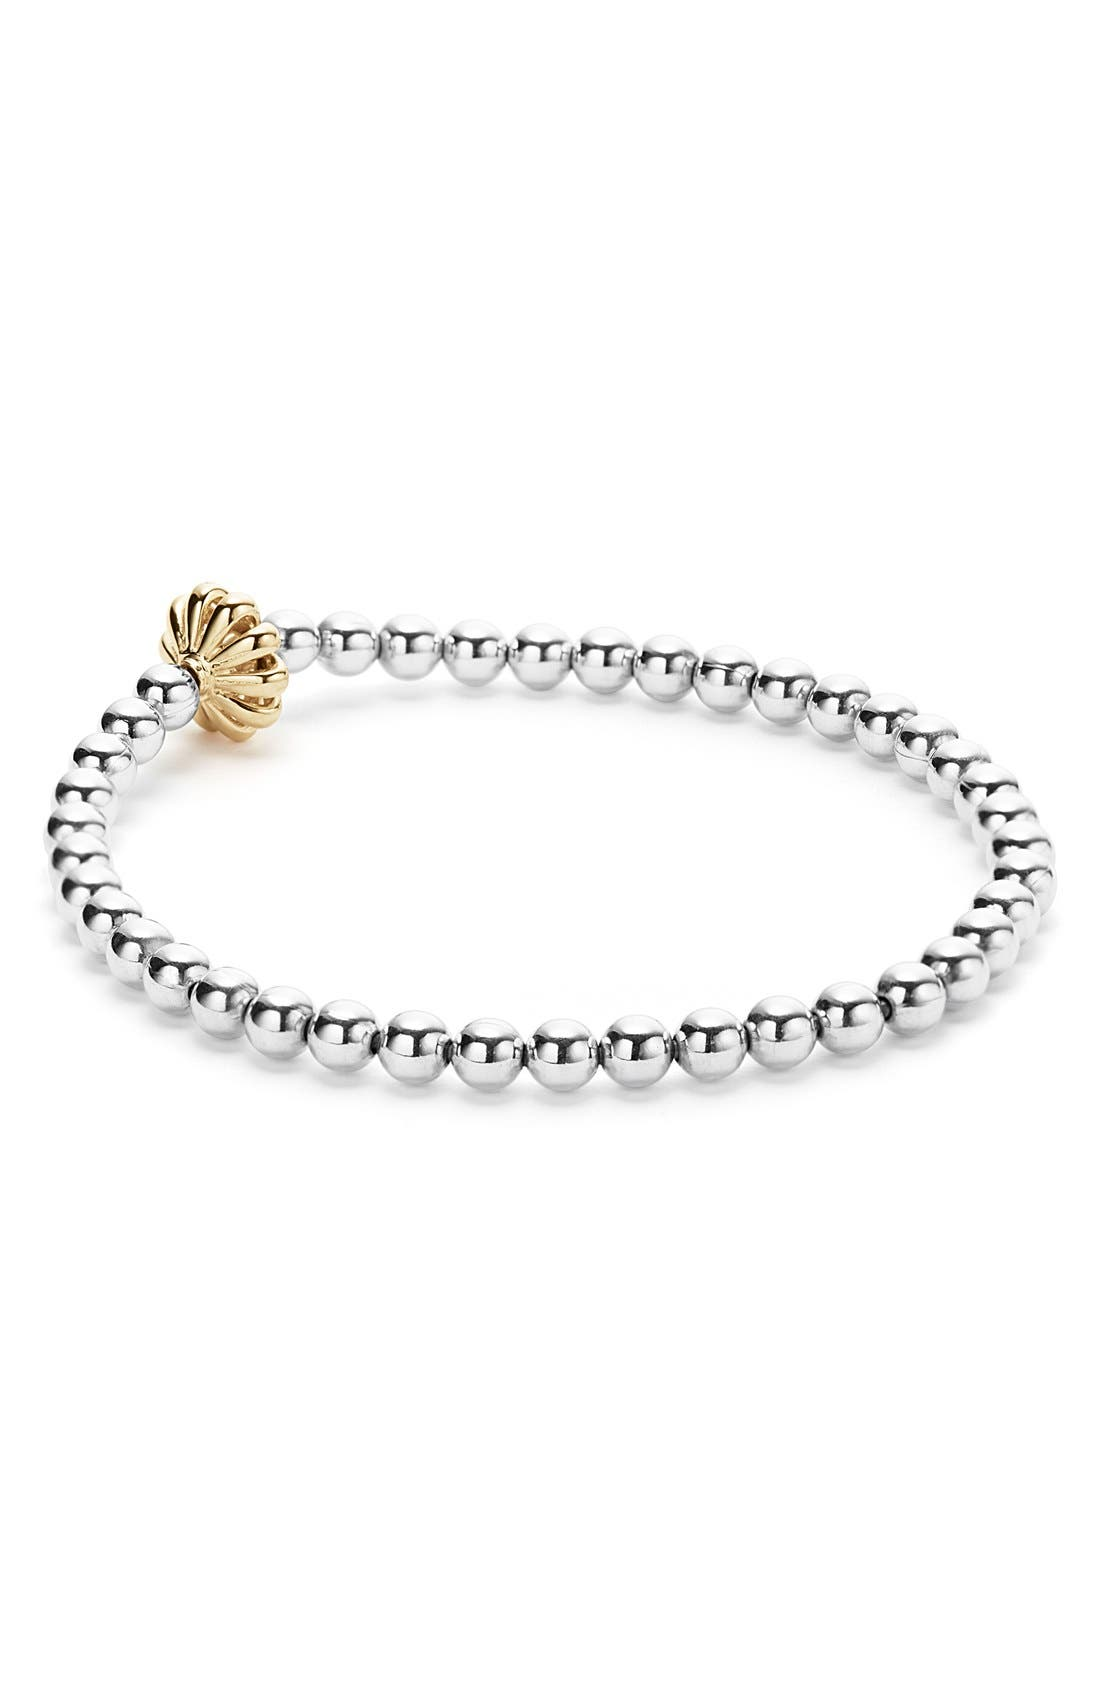 Caviar Icon Ball Bracelet,                             Alternate thumbnail 2, color,                             Silver/ Gold Birdcage